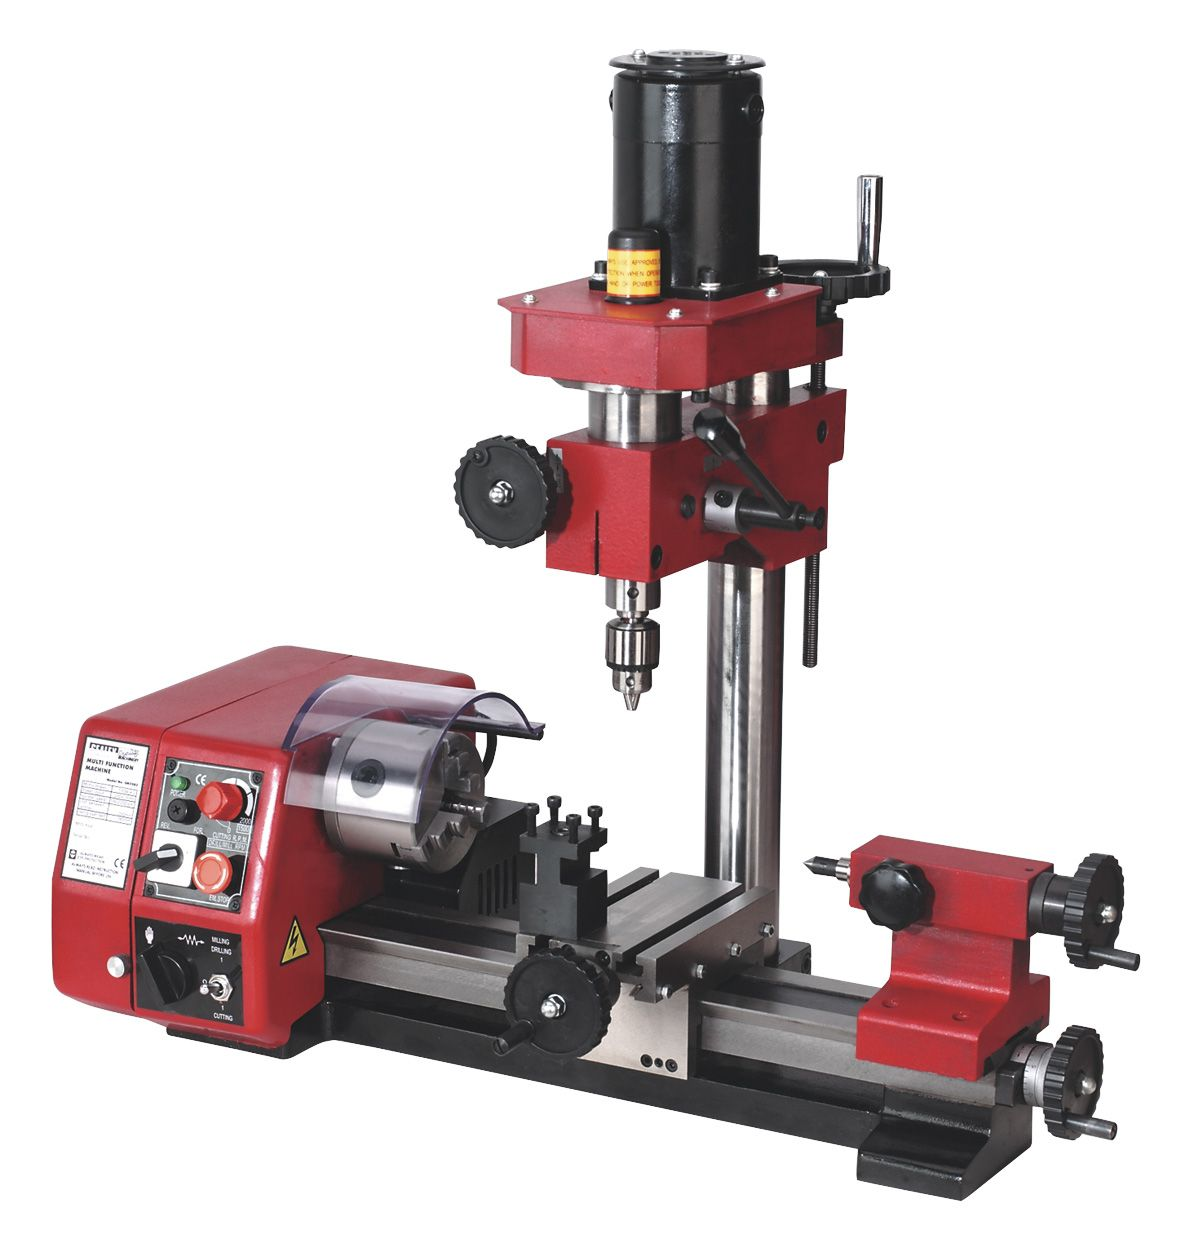 Sealey Mini Lathe & Drilling Machine